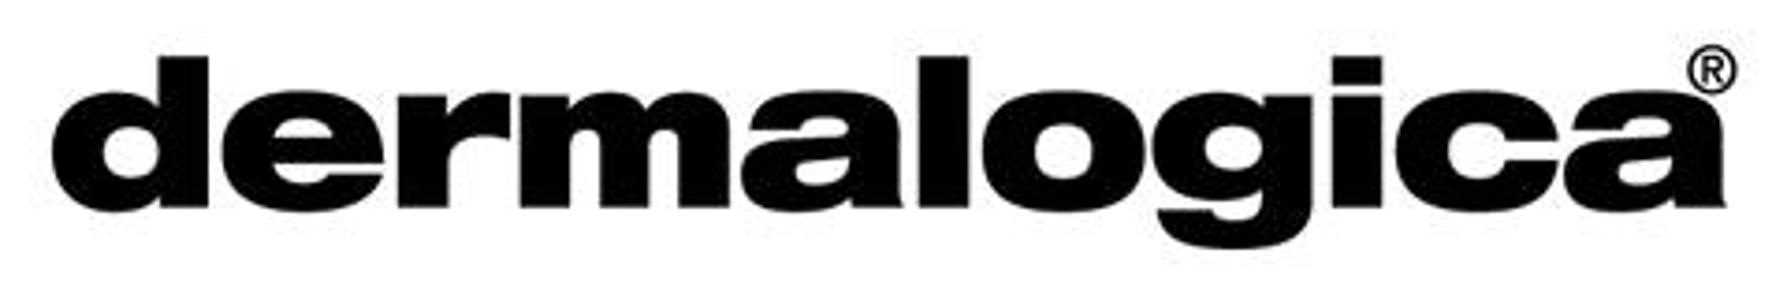 Dermalogica Logo Pictures to Pin on Pinterest - PinsDaddy